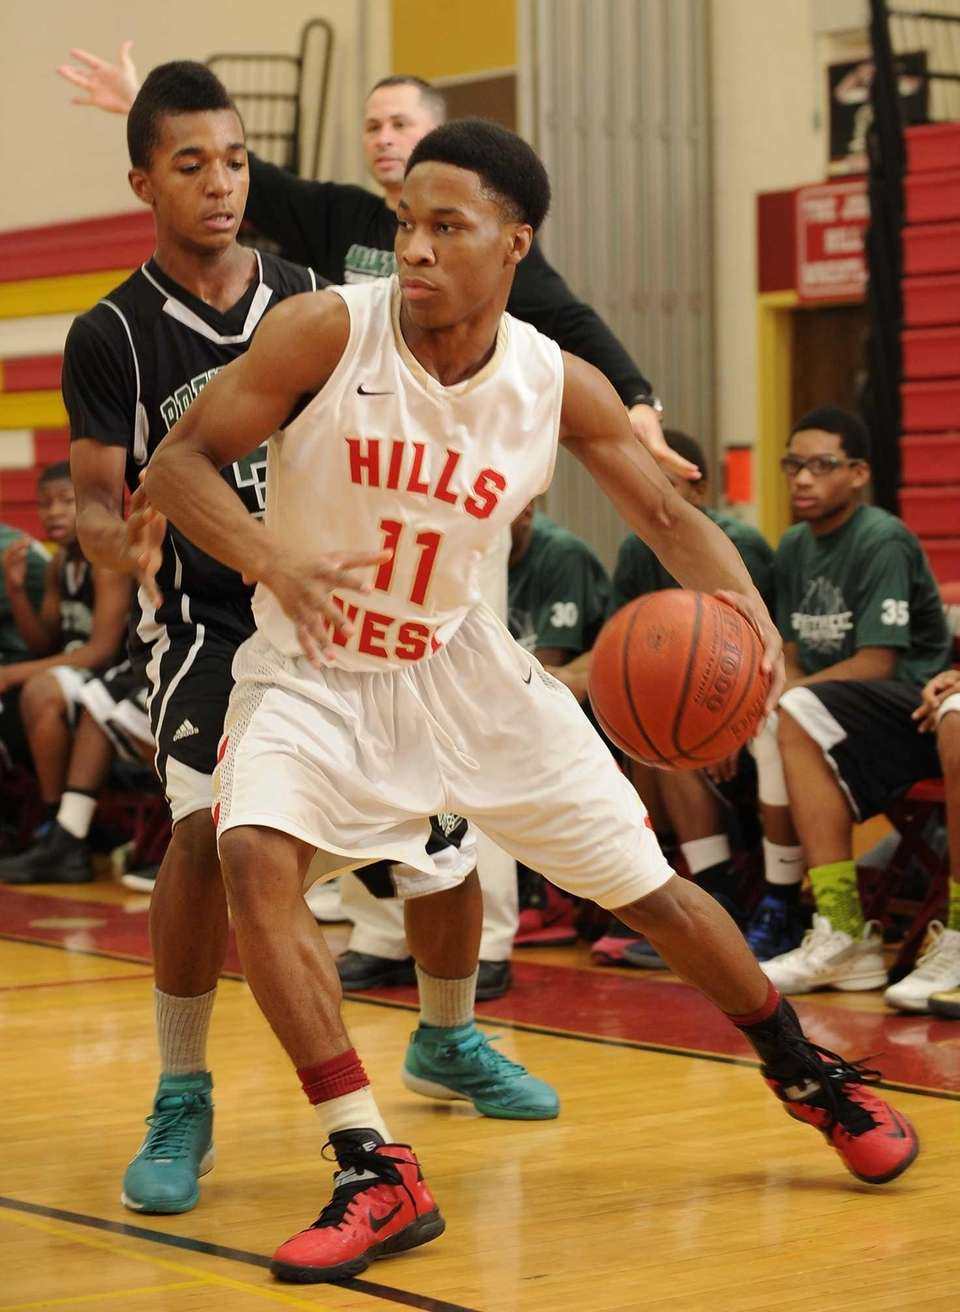 Half Hollow Hills West guard Tyrell Ryan drives